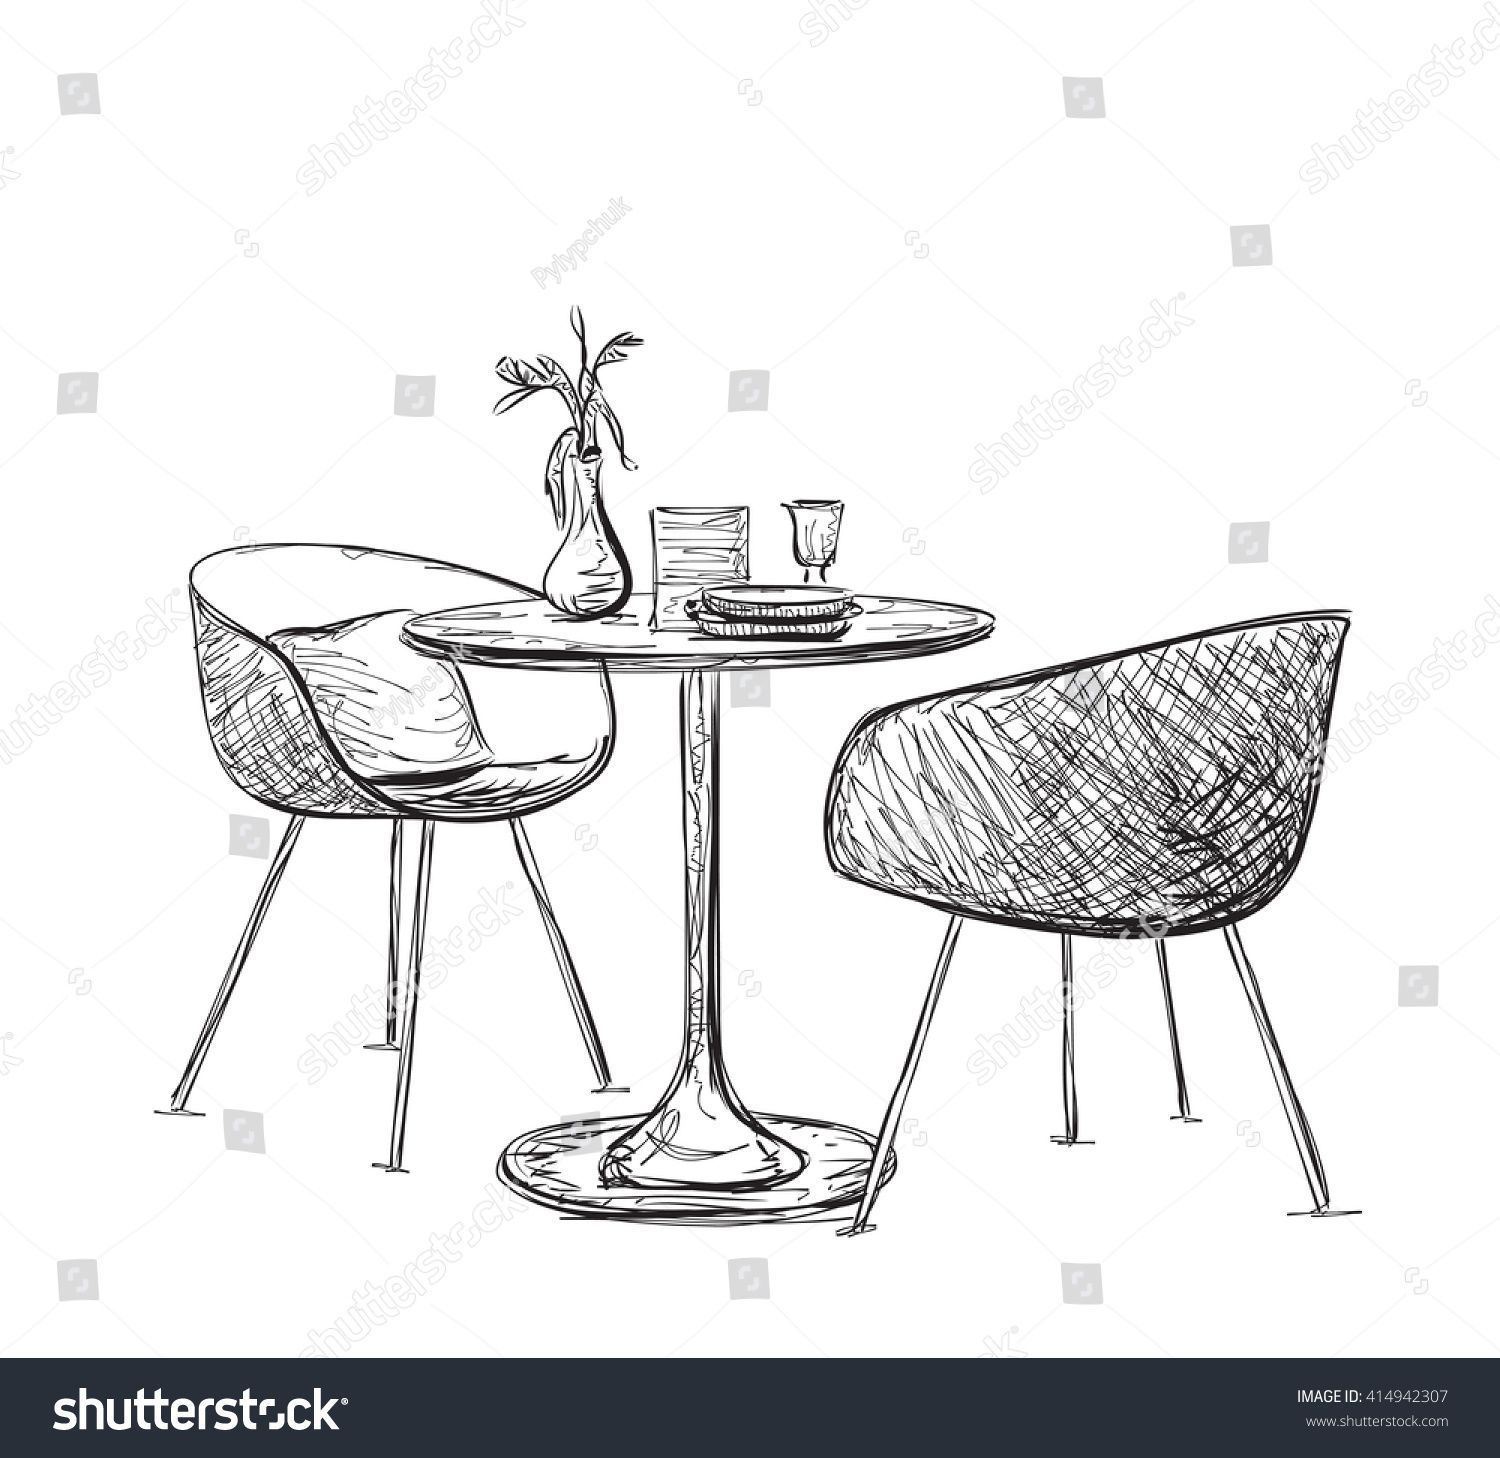 Sketch Modern Interior Table Chairs Hand Stock Vector Royalty Free 414942307 An In 2020 Interior Design Sketches Furniture Design Sketches Interior Design Drawings